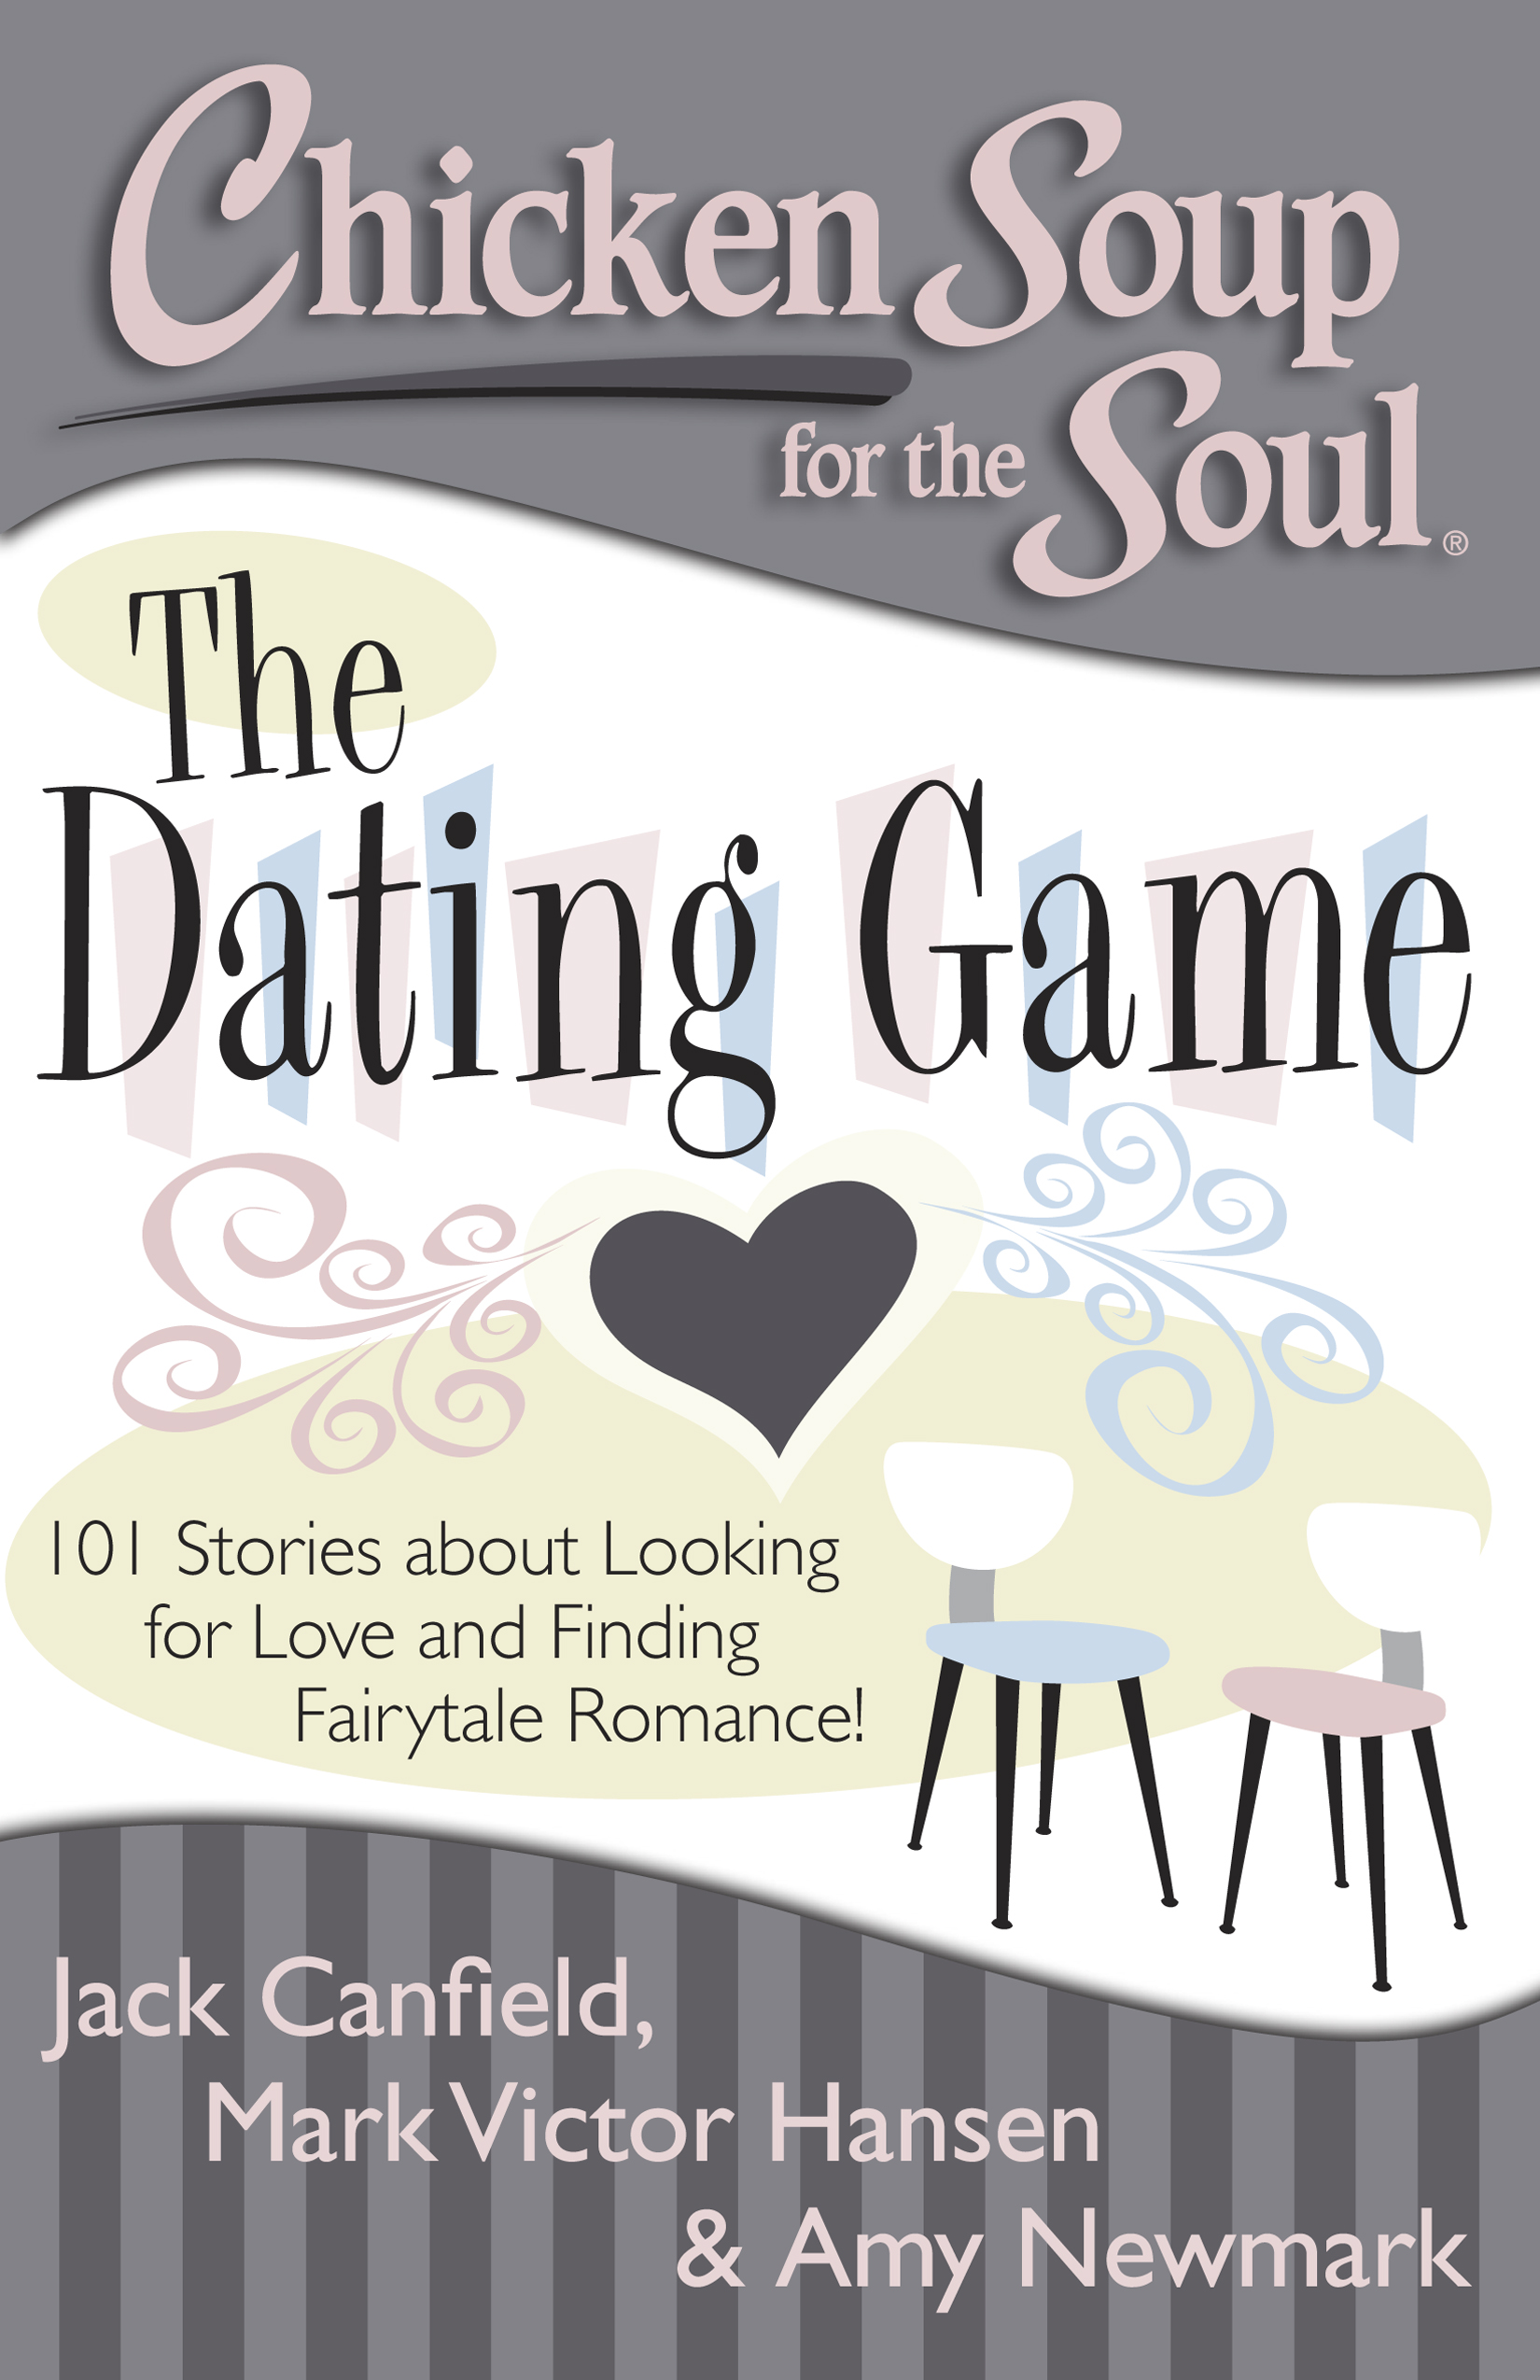 Chicken soup for the soul the dating game 9781611599299 hr